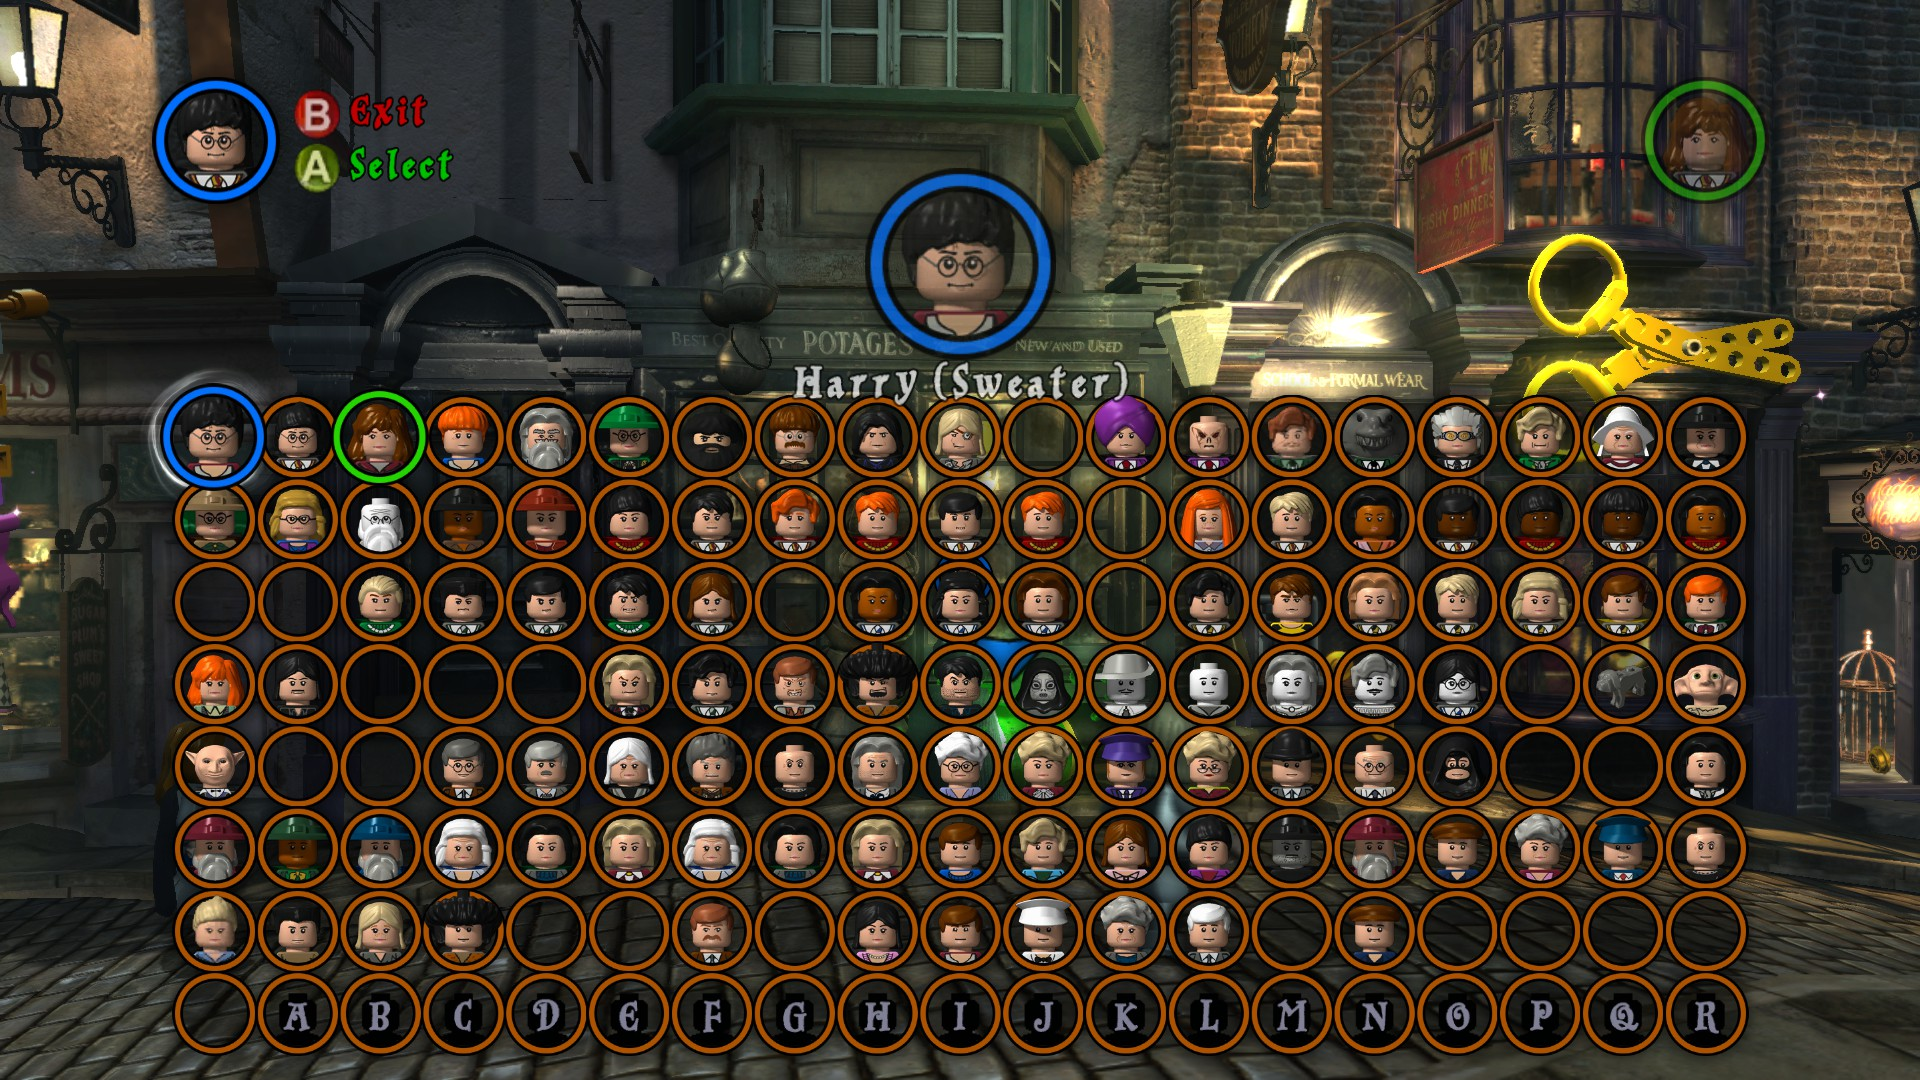 Lego Harry Potter 1 4 Character Mod Experimental Mods